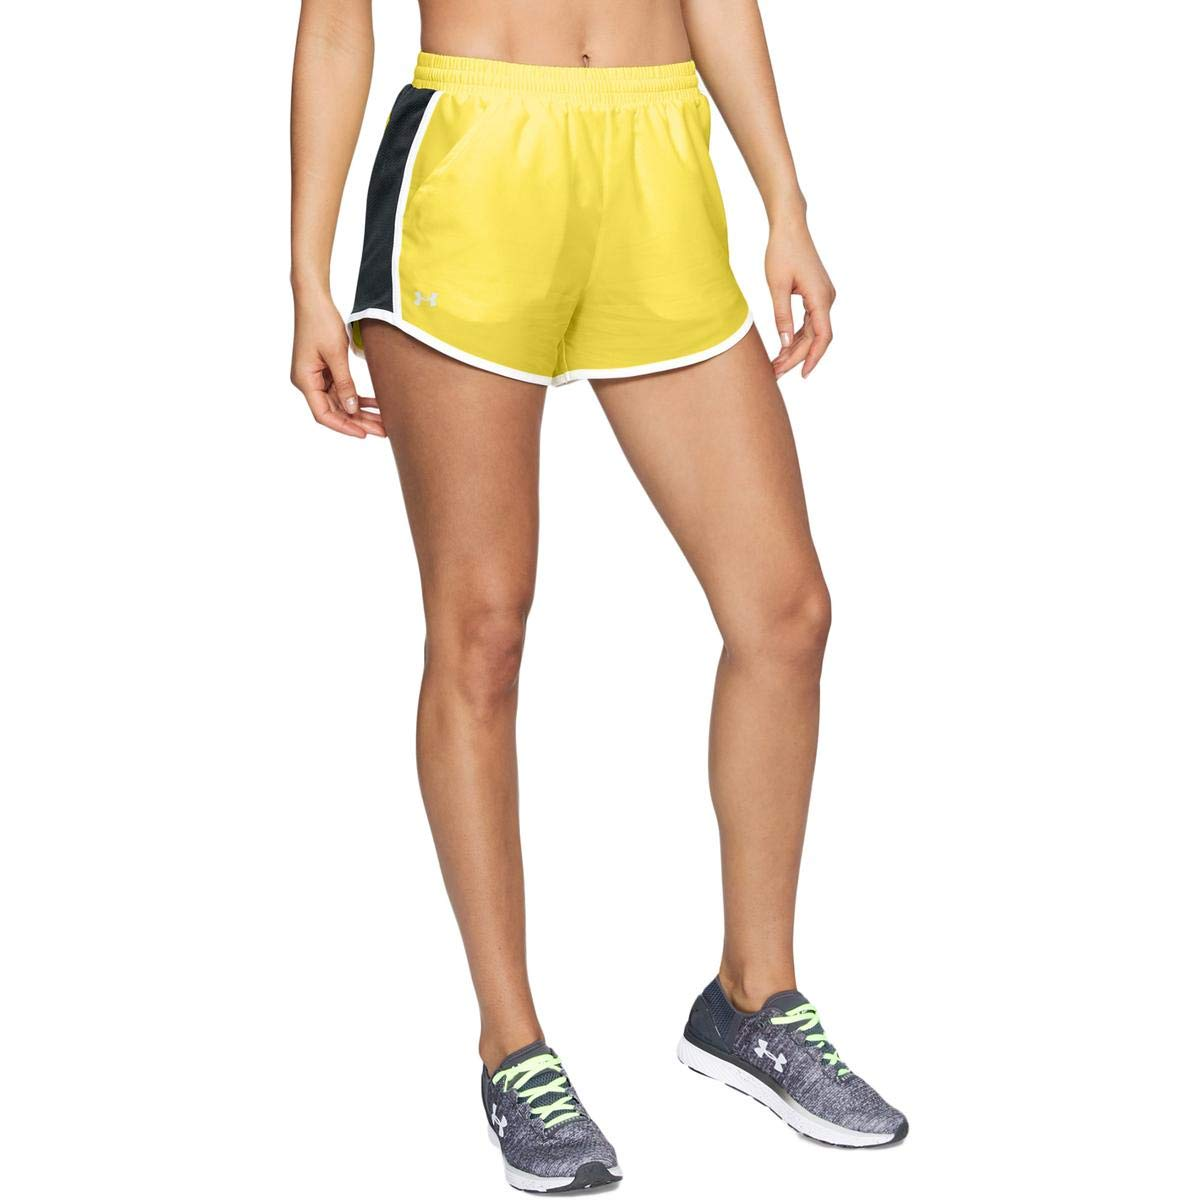 Under Armour Women's Fly-By Shorts, Tokyo Lemon /Reflective, XX-Small